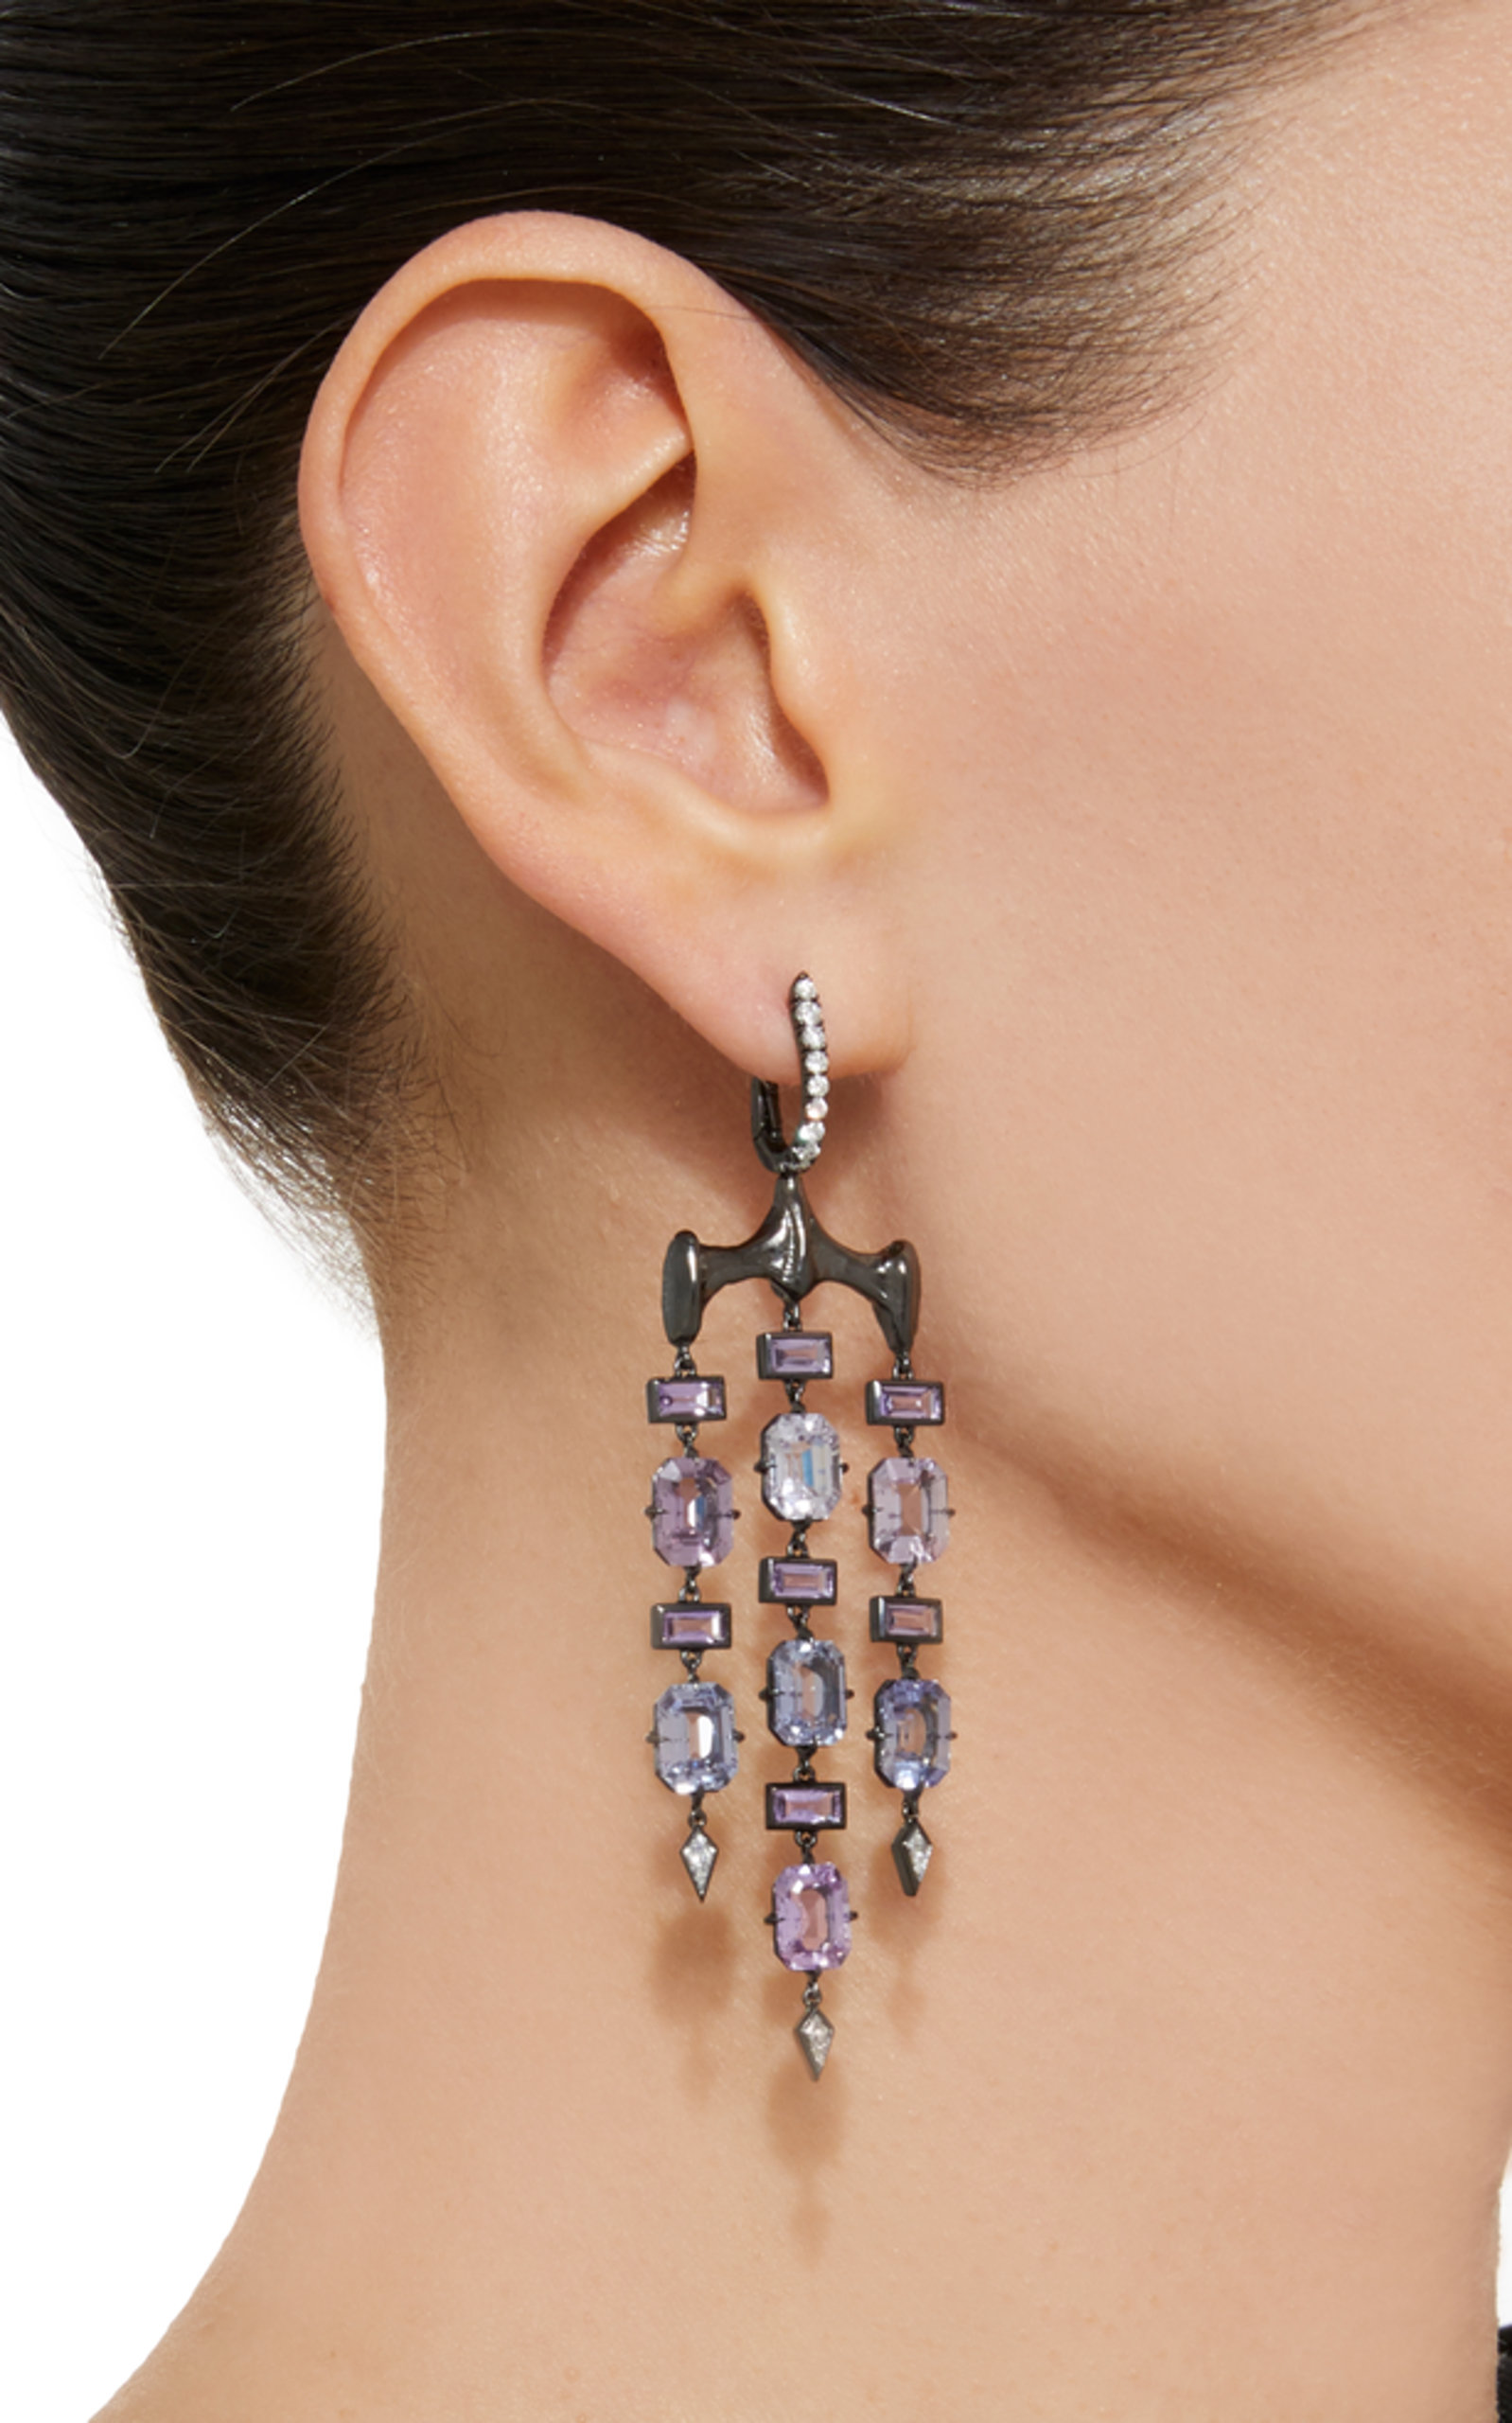 One-of-a-kind Boucles D'oreille Chrona Avec Diamants Et Saphirs Violets Vram VD3Dj